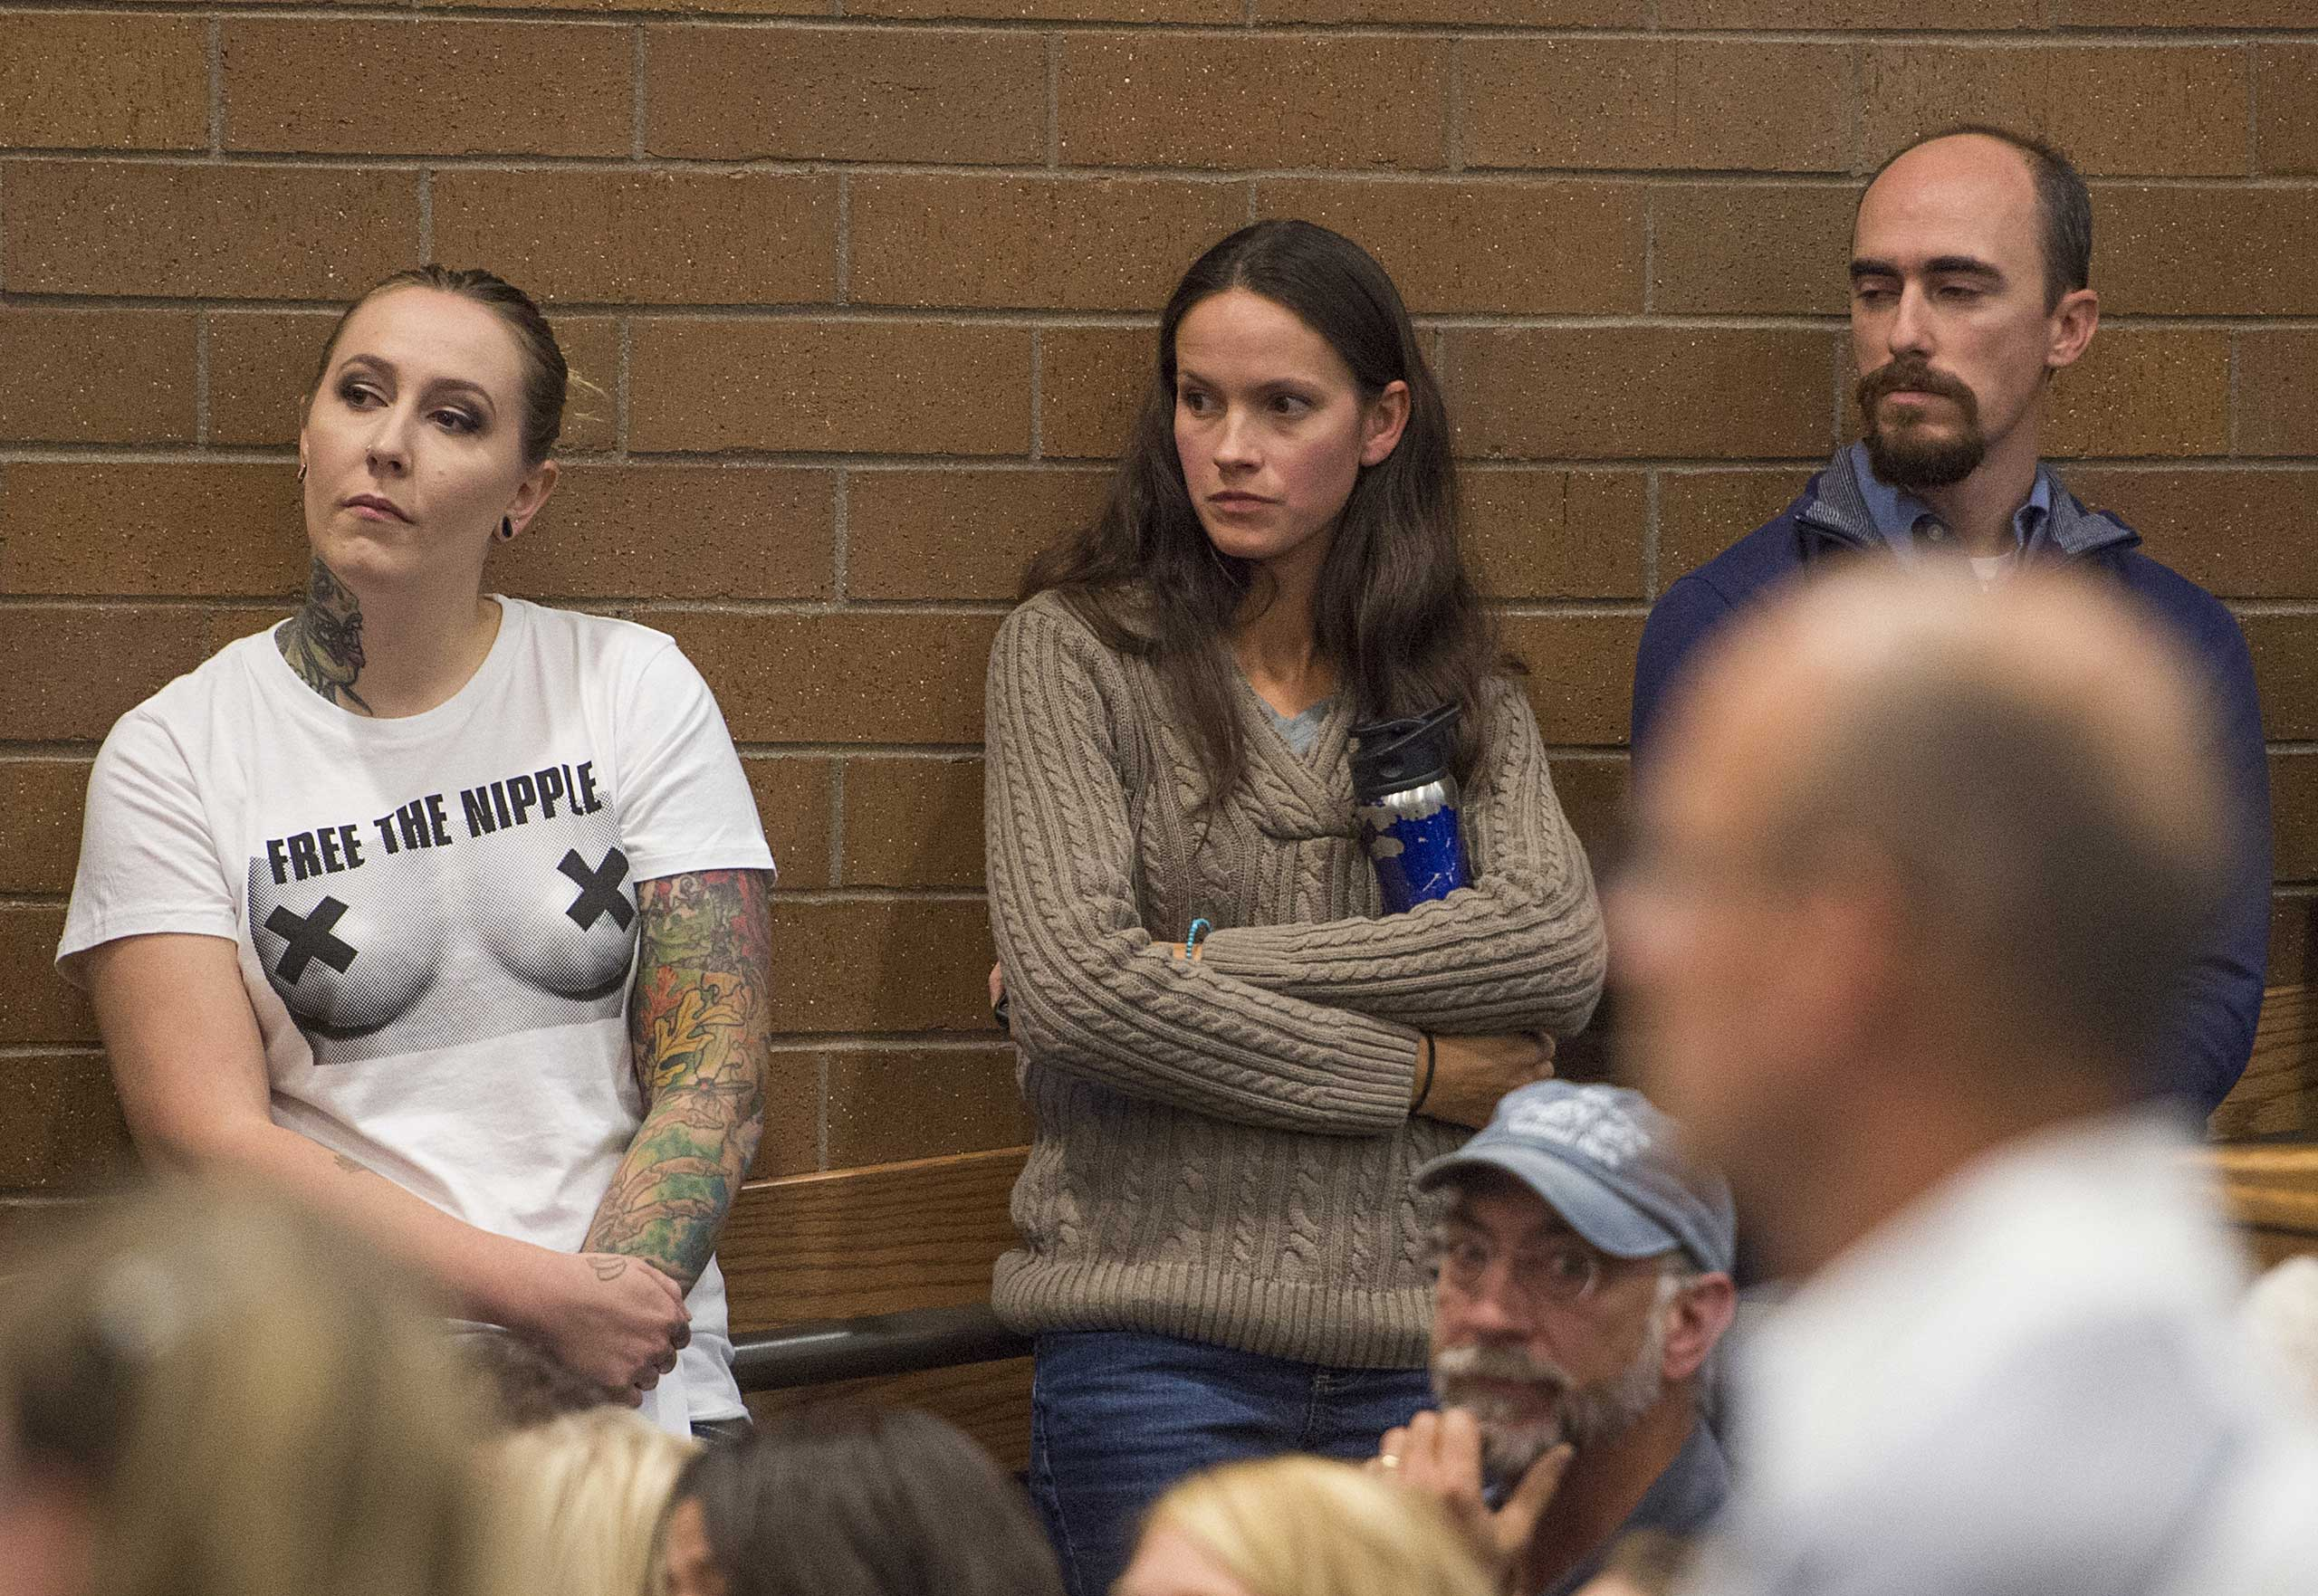 Samantha Six, left, waits to speak with the Fort Collins City Council during public comments on giving women the permission to appear topless in public  in Fort Collins, Colo., on Oct. 20, 2015.